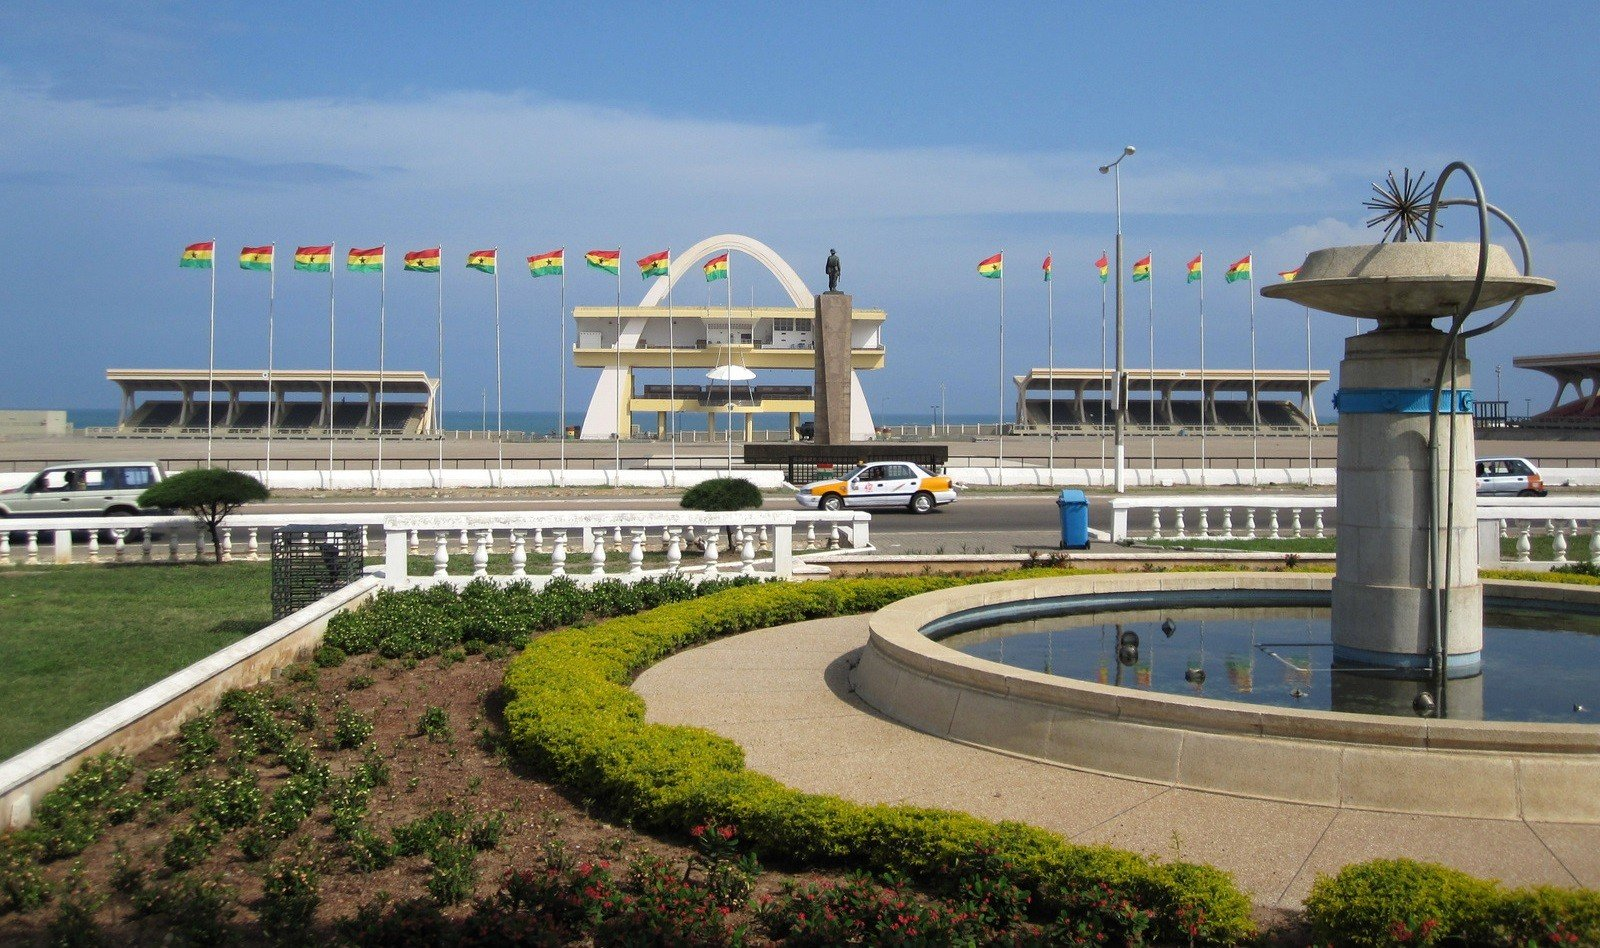 Independence_Square_Accra_Ghana